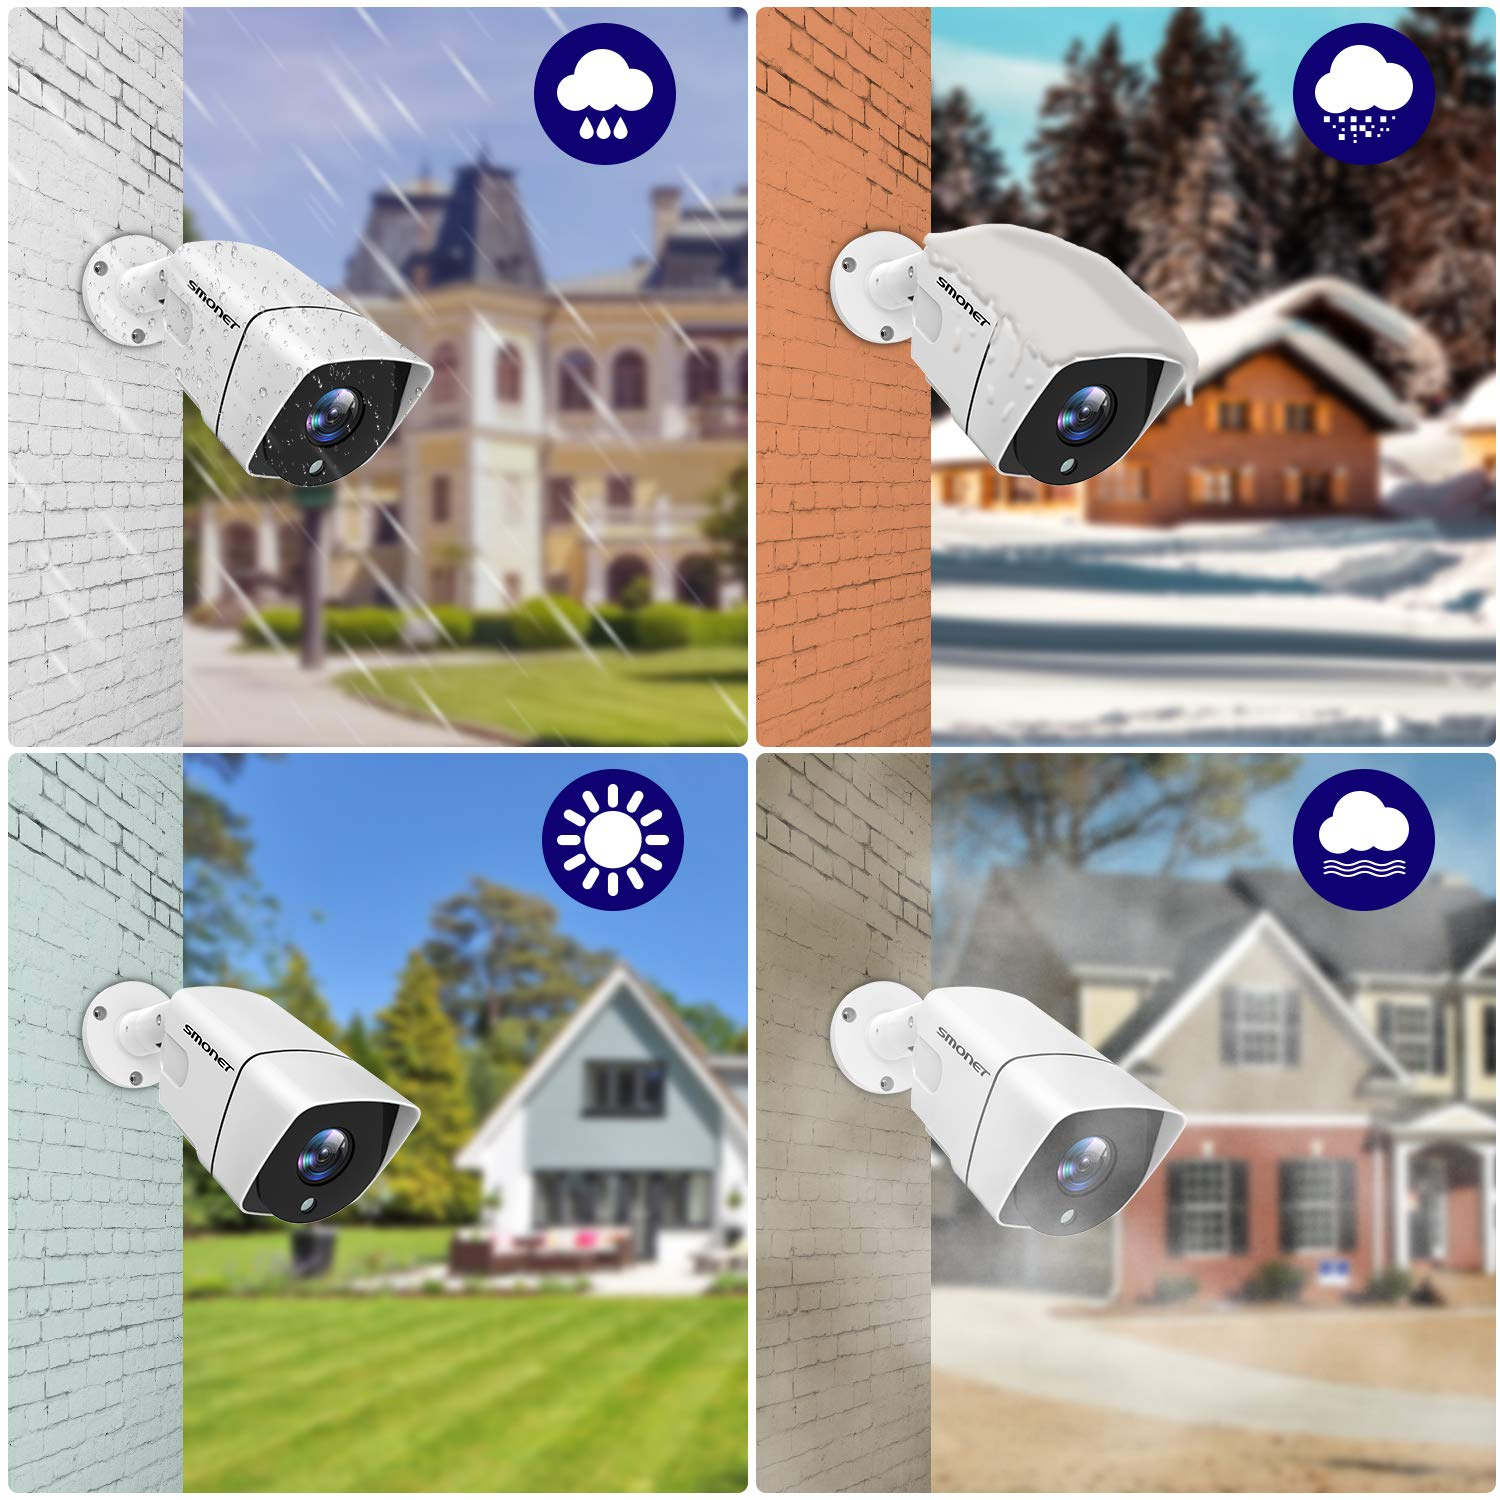 1TB Hard Drive ,4X 1080P Outdoor Indoor Security Cameras,IP66 Weatherproof,Night Vision,Remote View,Email Alert SMONET CCTV Security Camera Systems,1080P Full HD 8-Channel 5-in-1 Home Camera Systems